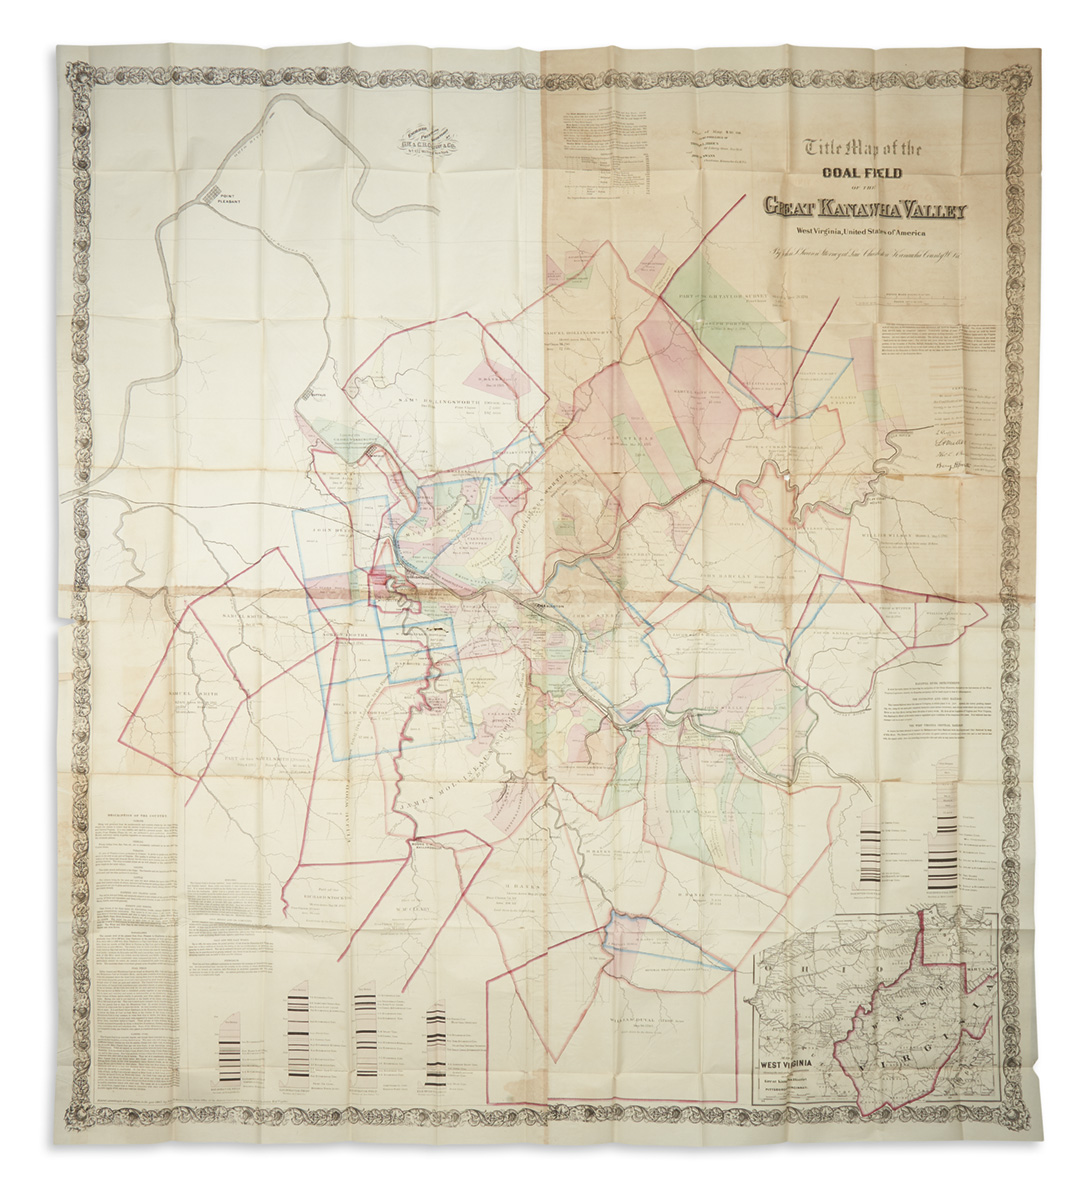 (WEST-VIRGINIA)-Swann-John-S-Title-Map-of-the-Coal-Field-of-